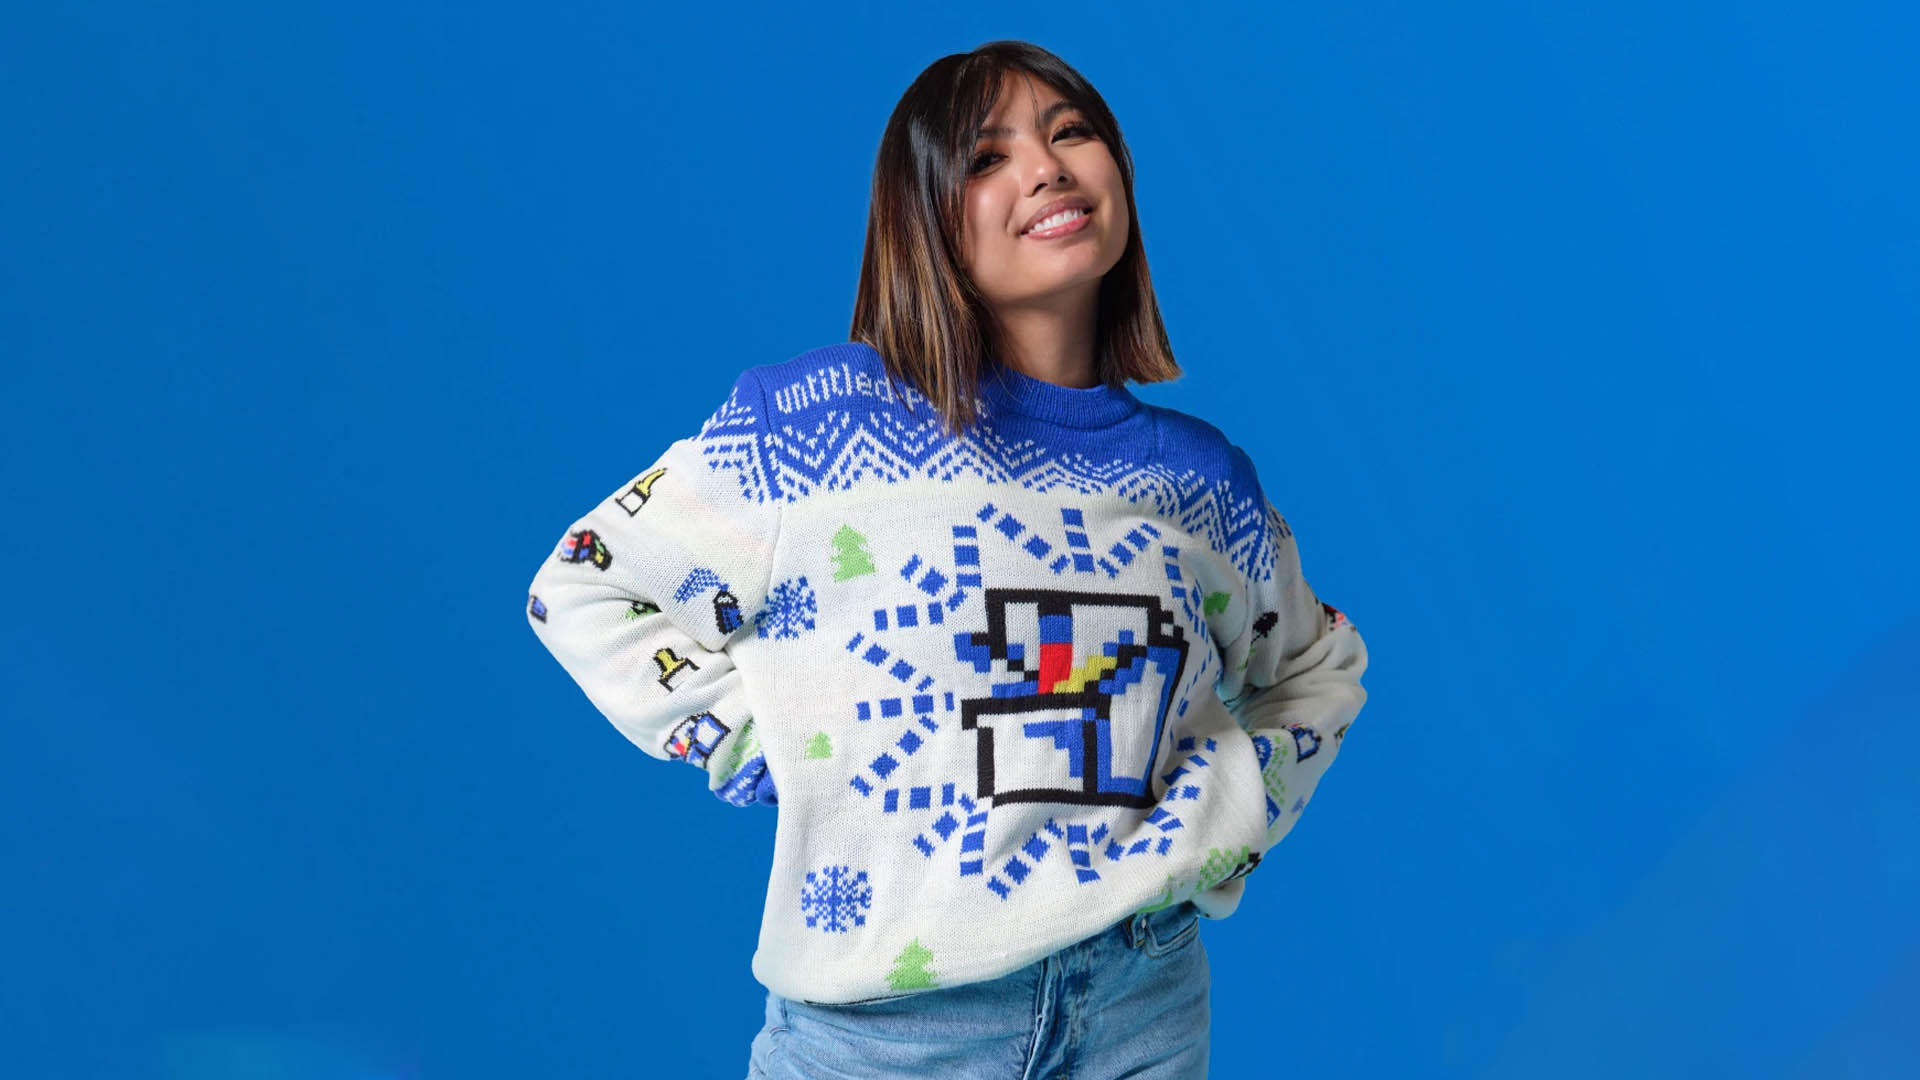 Microsoft's new Christmas sweater is an homage to the world's trustiest app, MS Paint